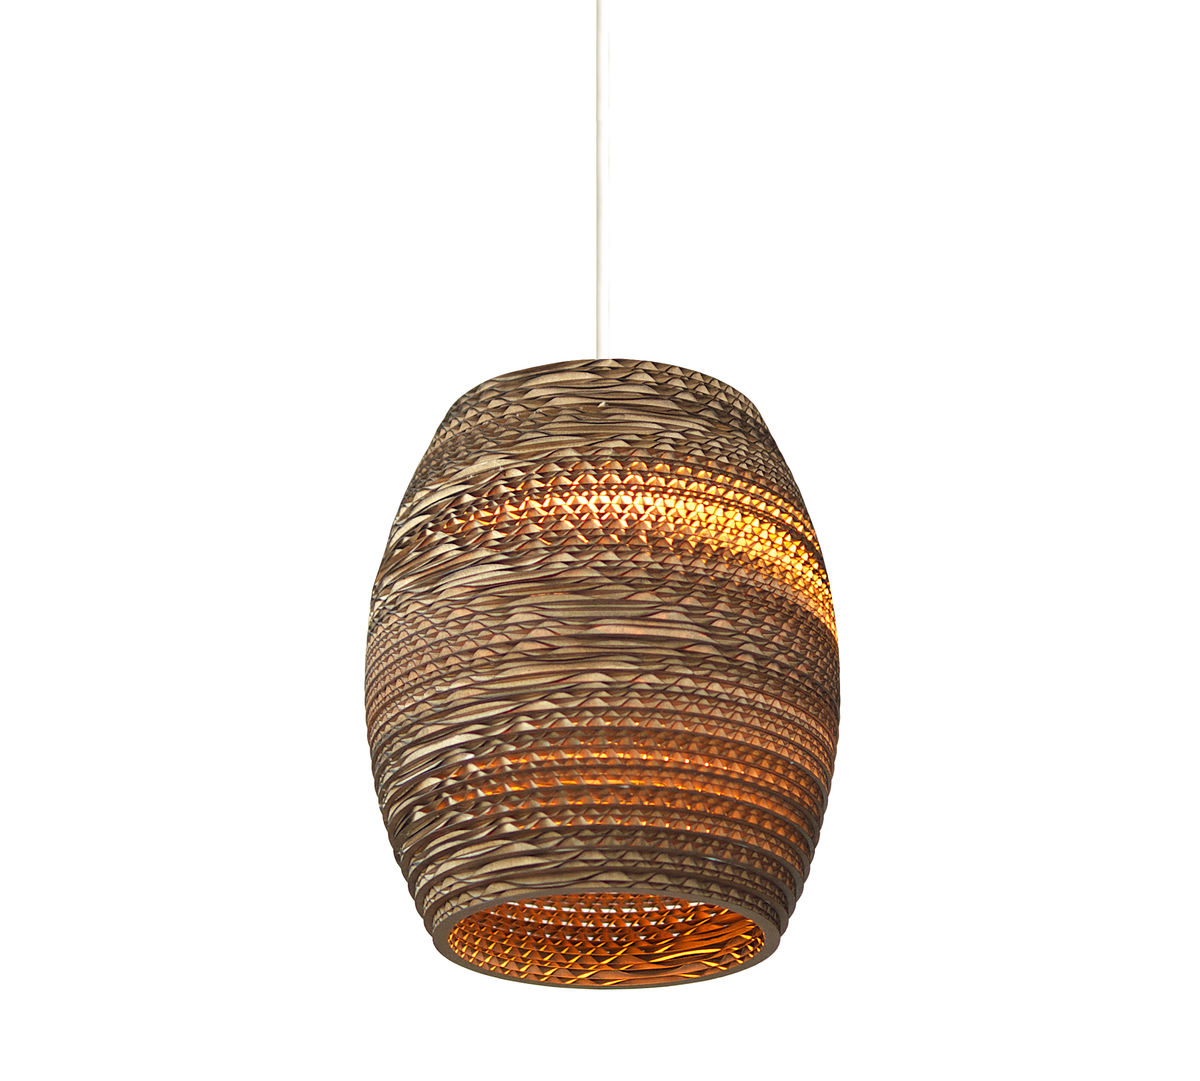 Recycled Cardboard Olive Pendant Light - product images  of